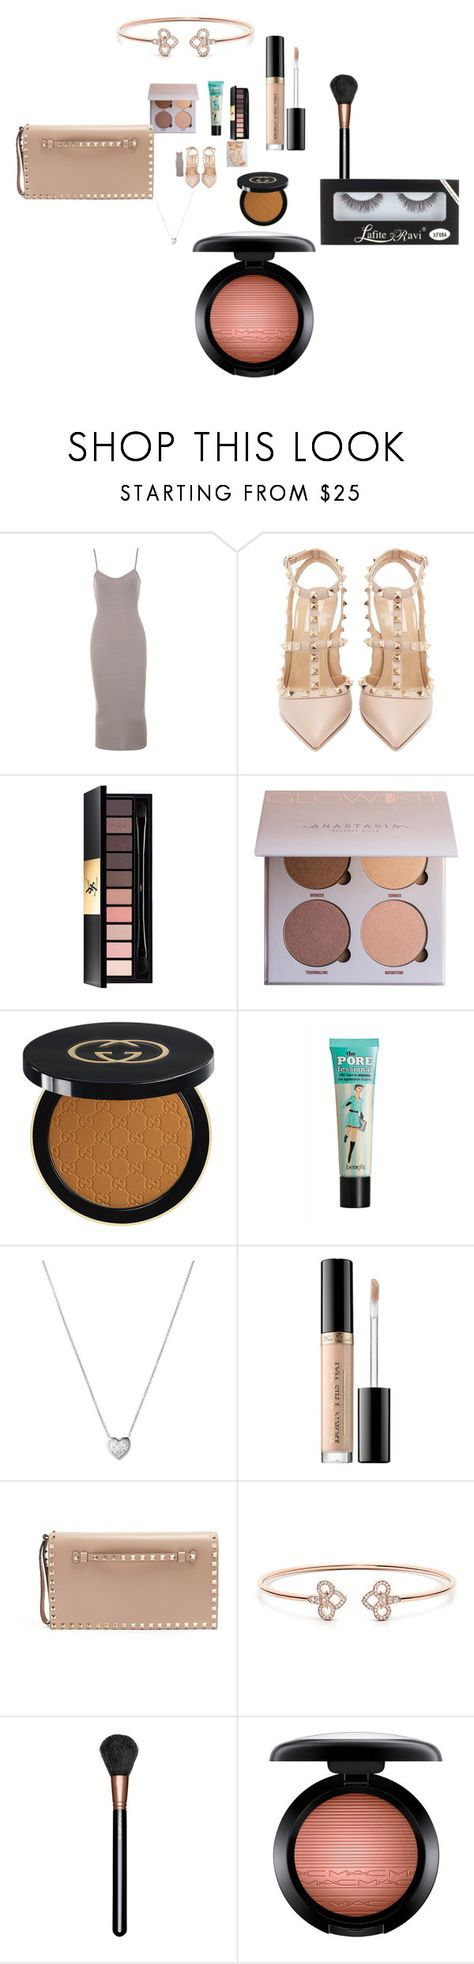 """Untitled #4495"" by fashionicon67 ❤ liked on Polyvore featuring Valentino, Yves Saint Laurent, Gucci, Links of London, Too Faced Cosmetics and MAC Cosmetics"